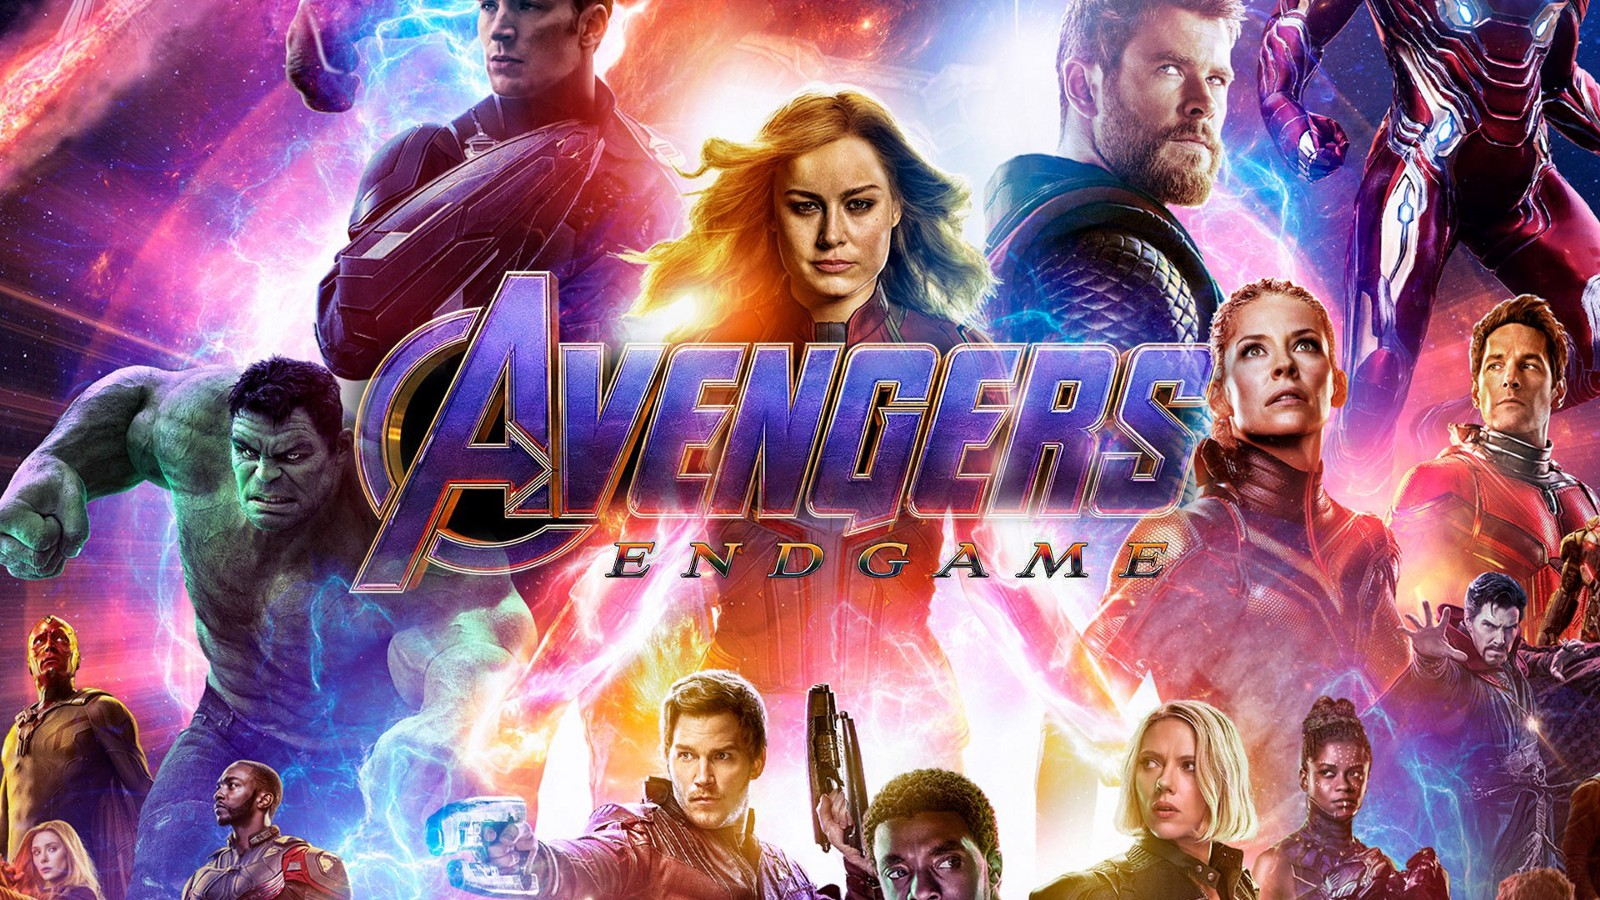 Hd123movieswatch Avengers Endgame Online And 2019 Full For